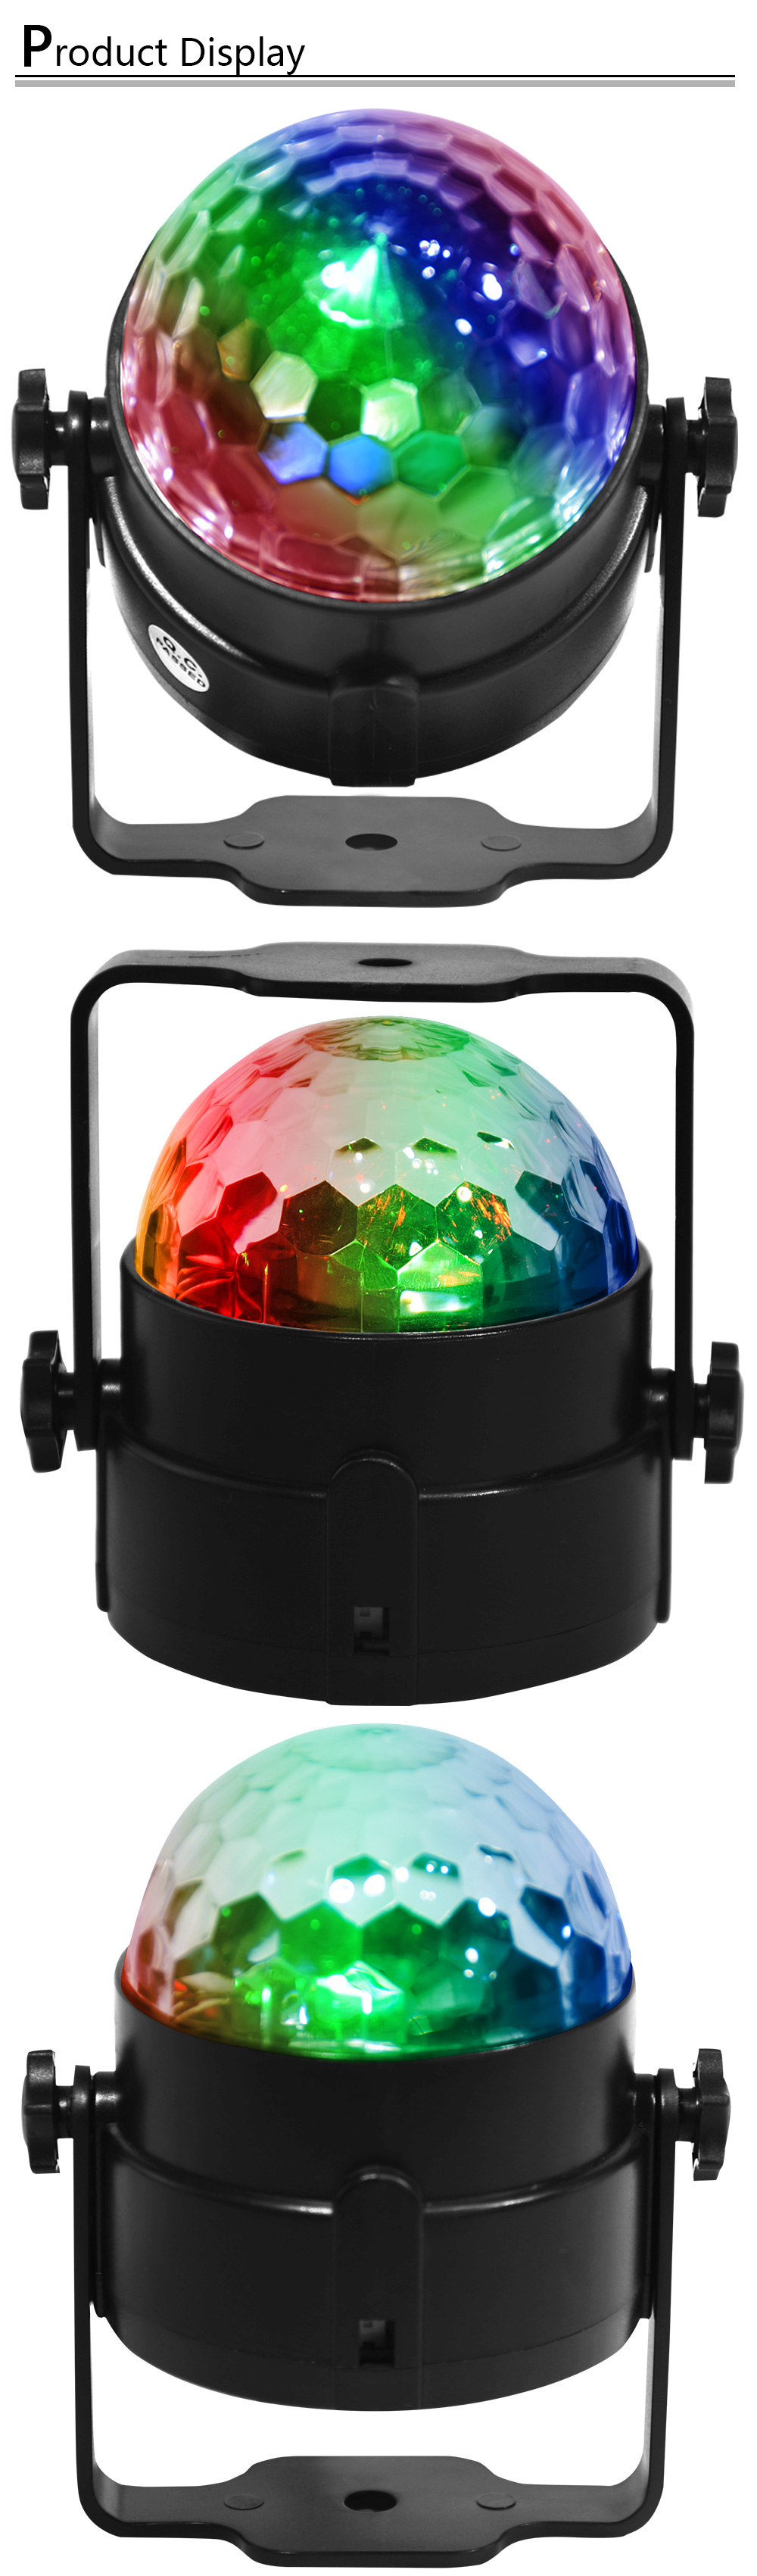 HTB1bgWkXAL0gK0jSZFtq6xQCXXas - 7 Colors Disco Ball Lumiere 3W Sound Activated Strobe Led RGB Stage Lighting effect Lamp Laser Christmas Dj KTV Light Party Show